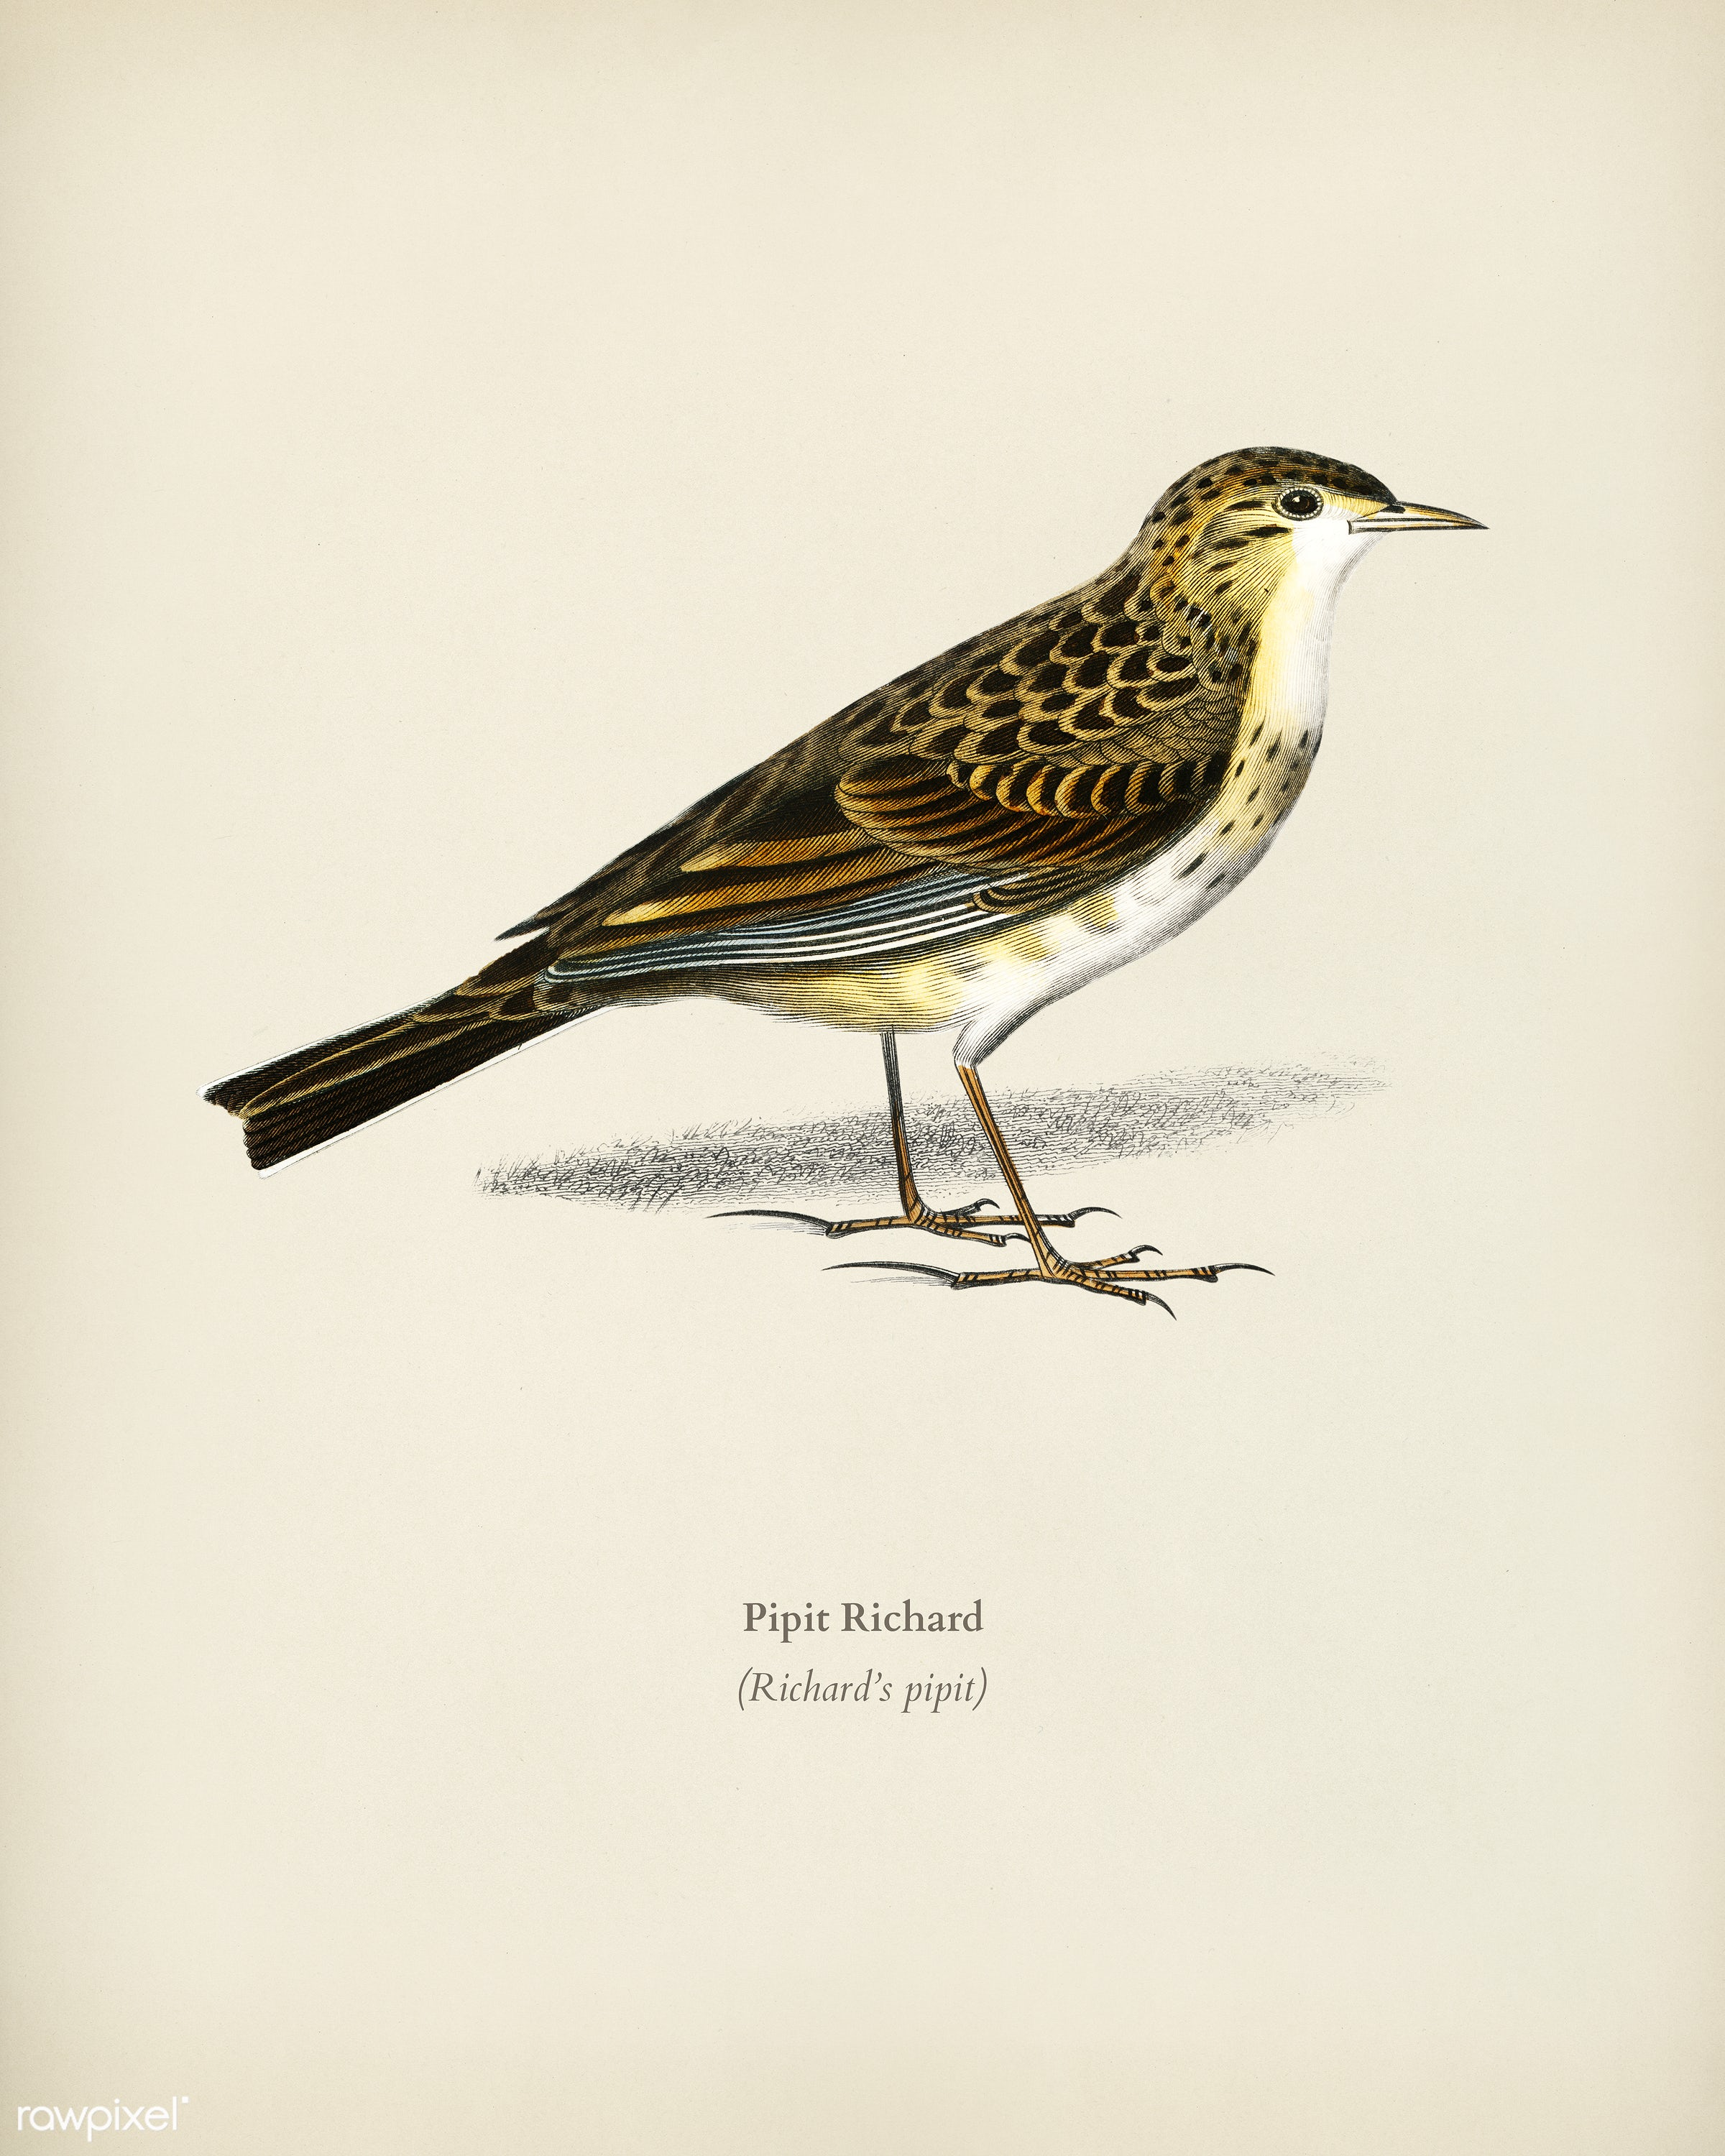 Richard 's pipit (Pipit Richard) illustrated by Charles Dessalines D' Orbigny (1806-1876). Digitally enhanced from...